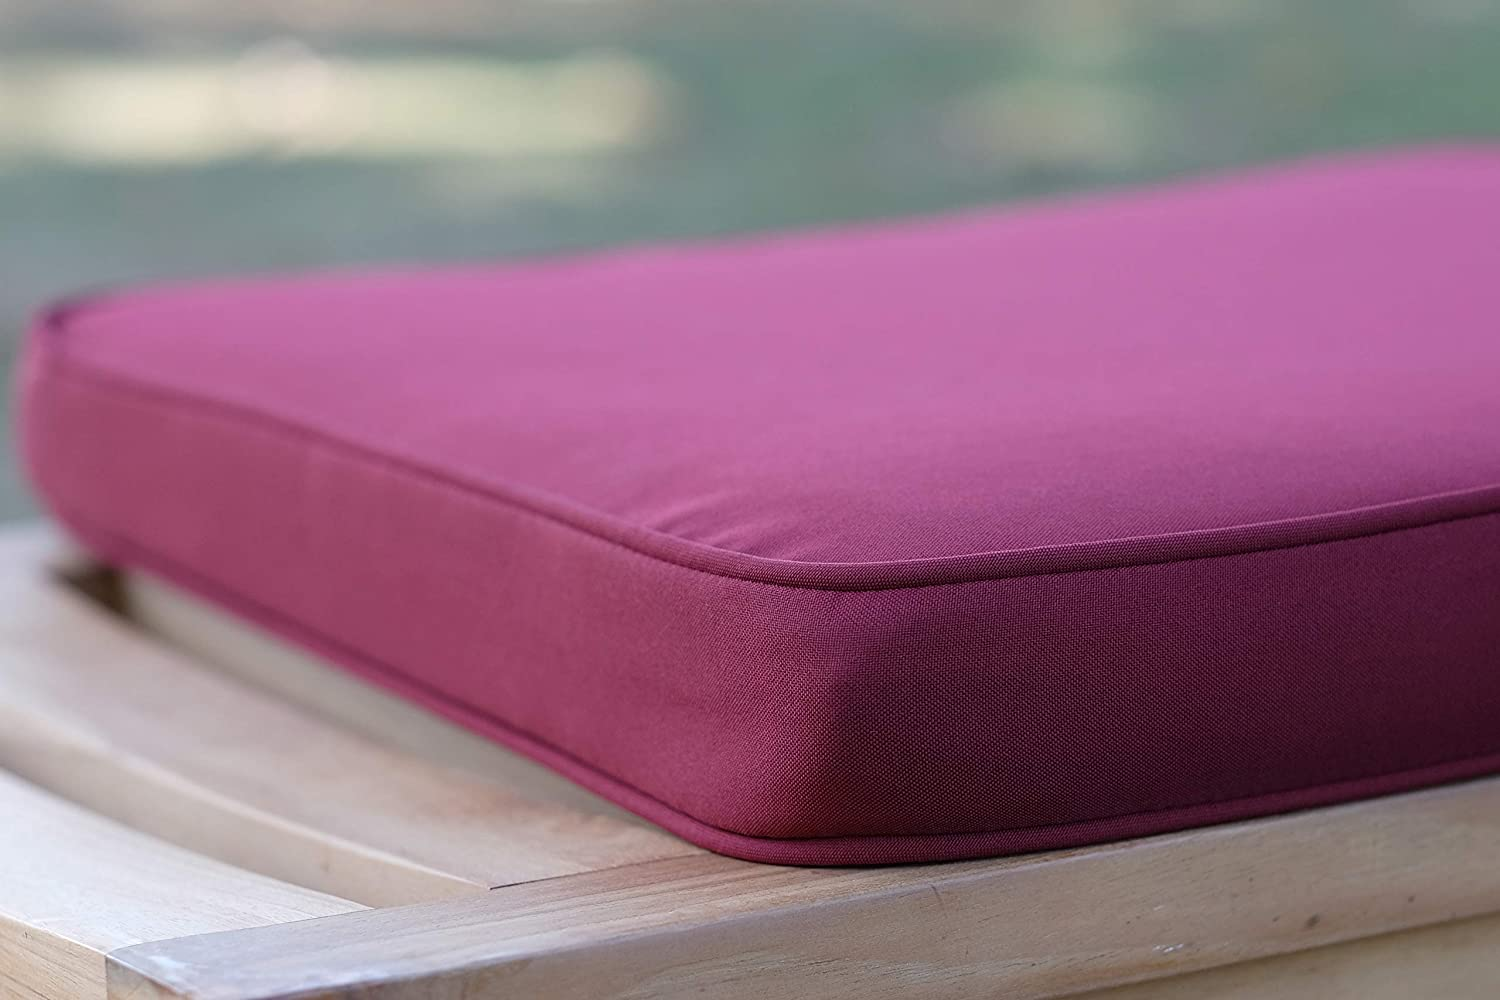 Pack of 2 Large Outdoors Chairs Cushions with Comfortable 50mm Foam Filling Burgundy Outdoor Seat Cushions Field /& Hawken Removable Quick Drying Garden Seat Cushions Covers for Easy Care and 180gsm Hard-Wearing Vibrant Colour Fabric